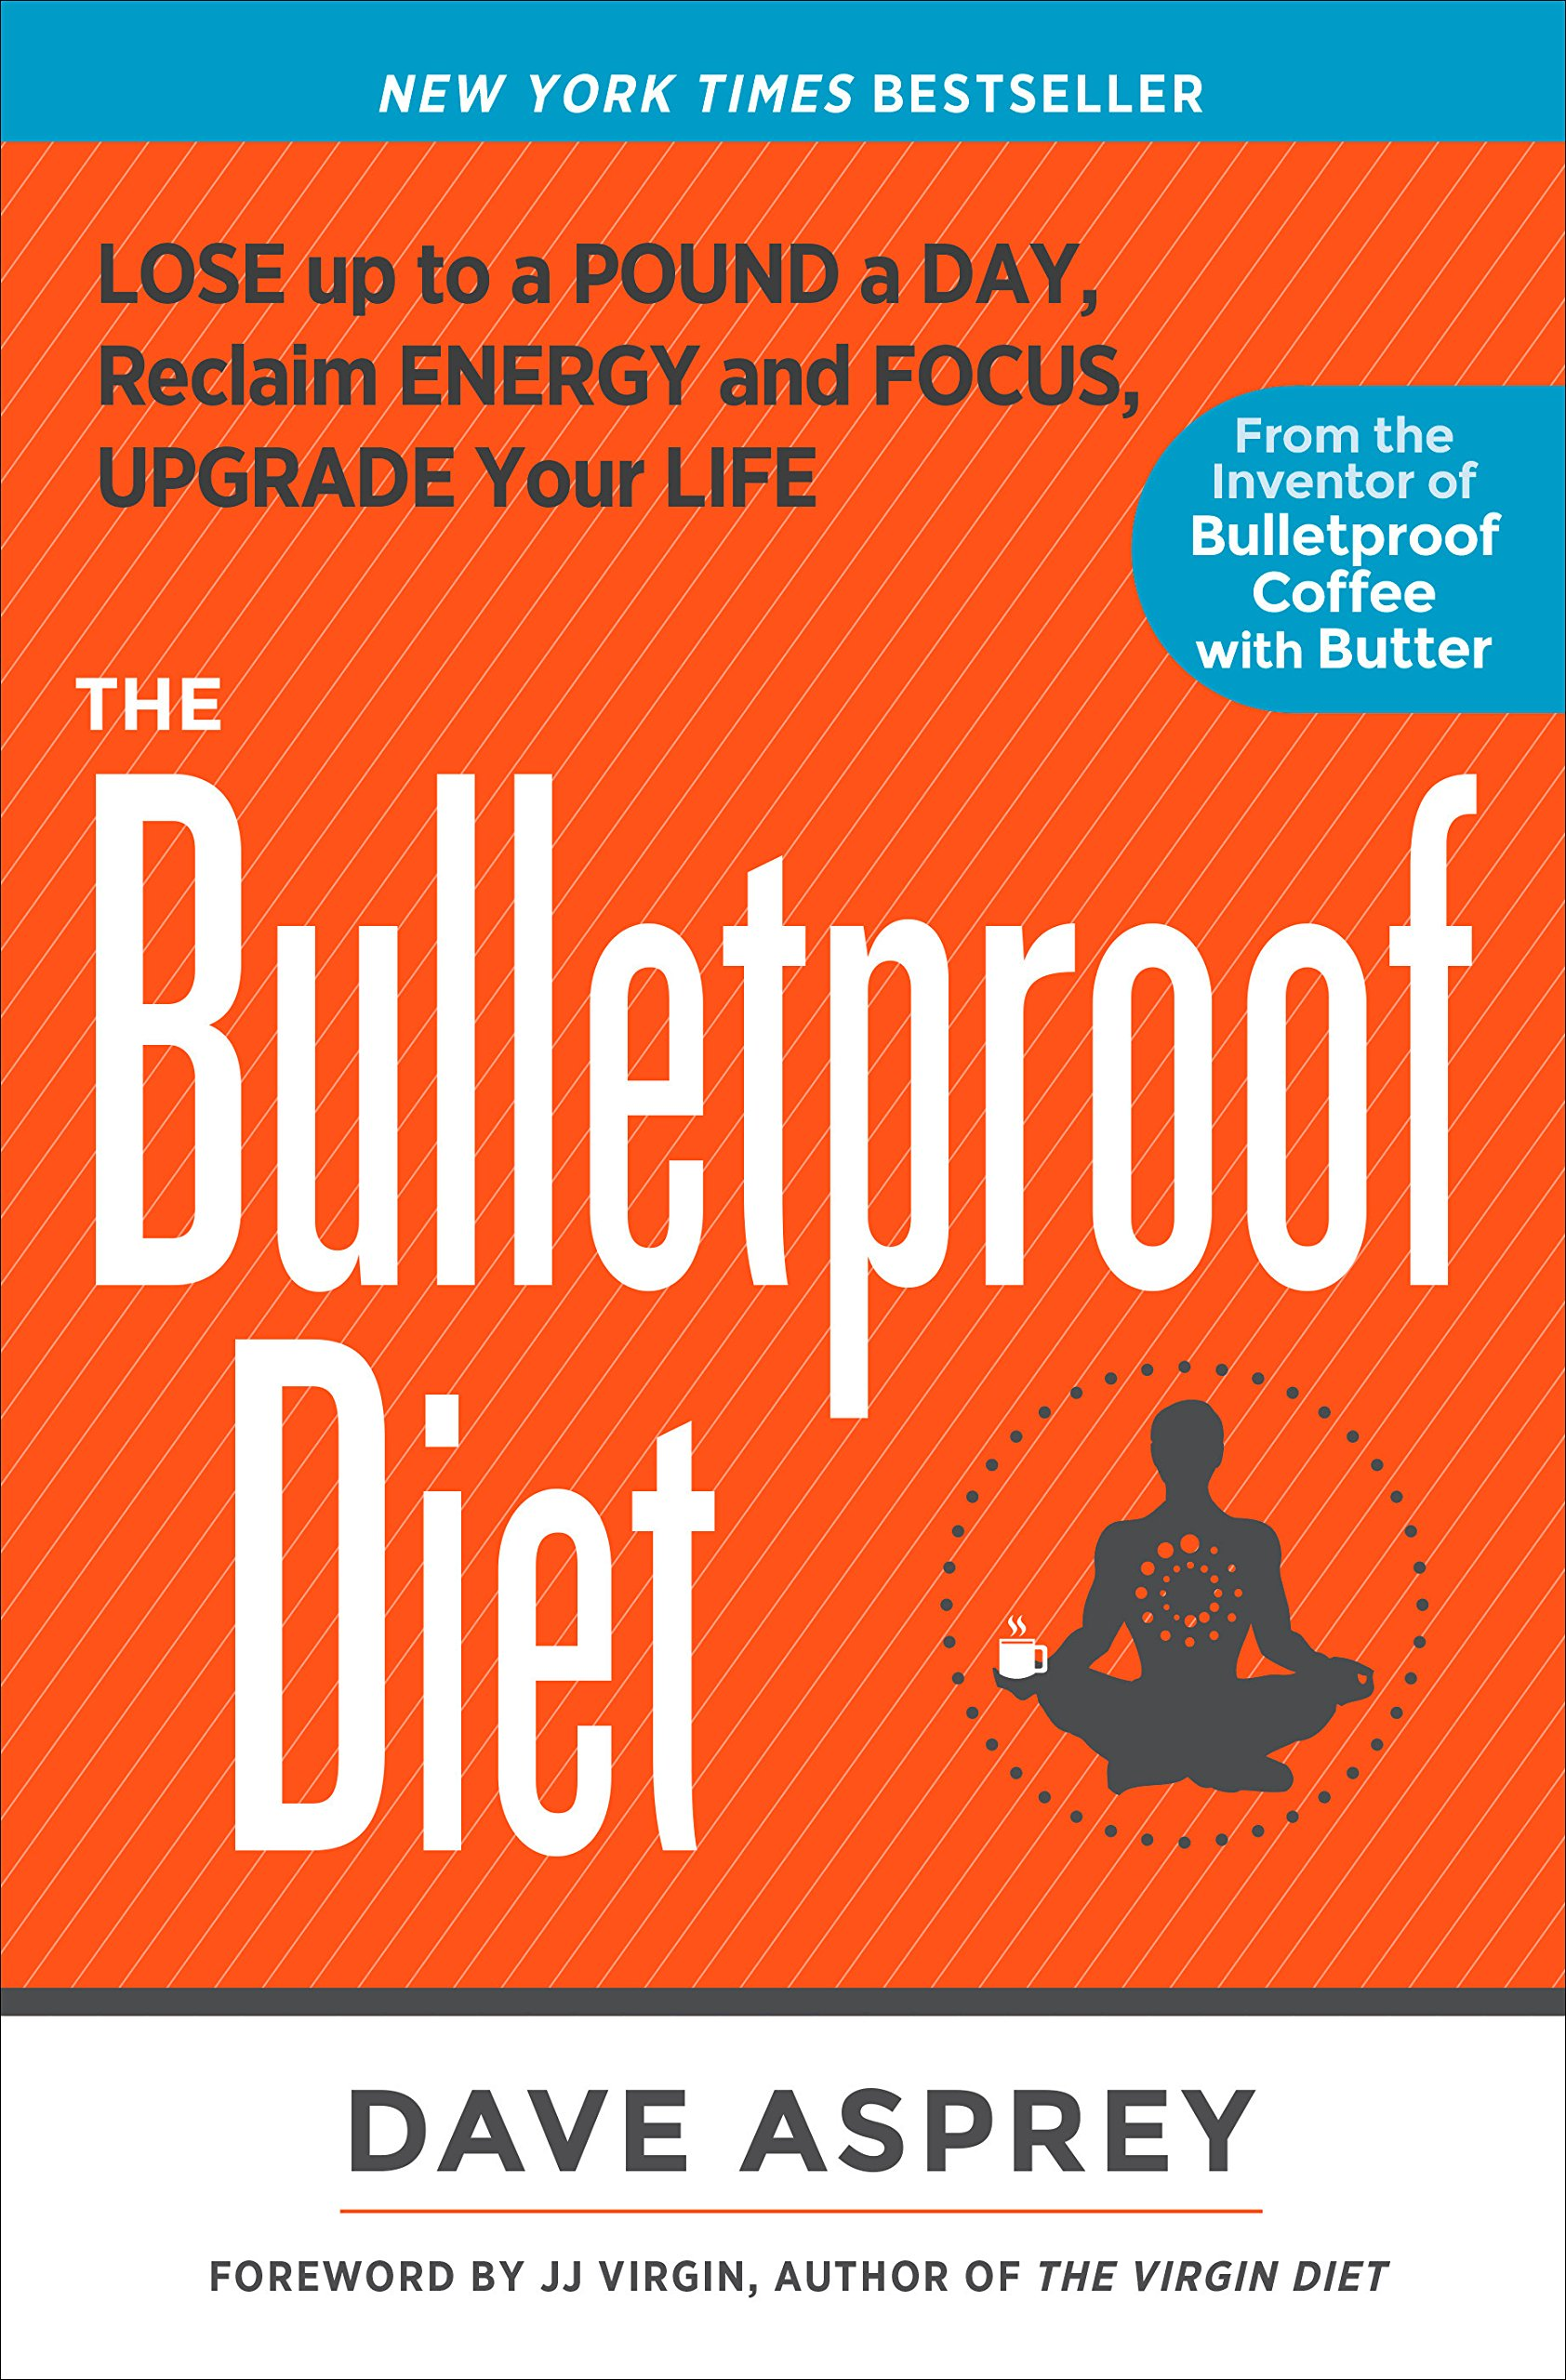 Download The Bulletproof Diet: Lose Up To A Pound A Day, Reclaim Energy And Focus, Upgrade Your Life (English Edition) 